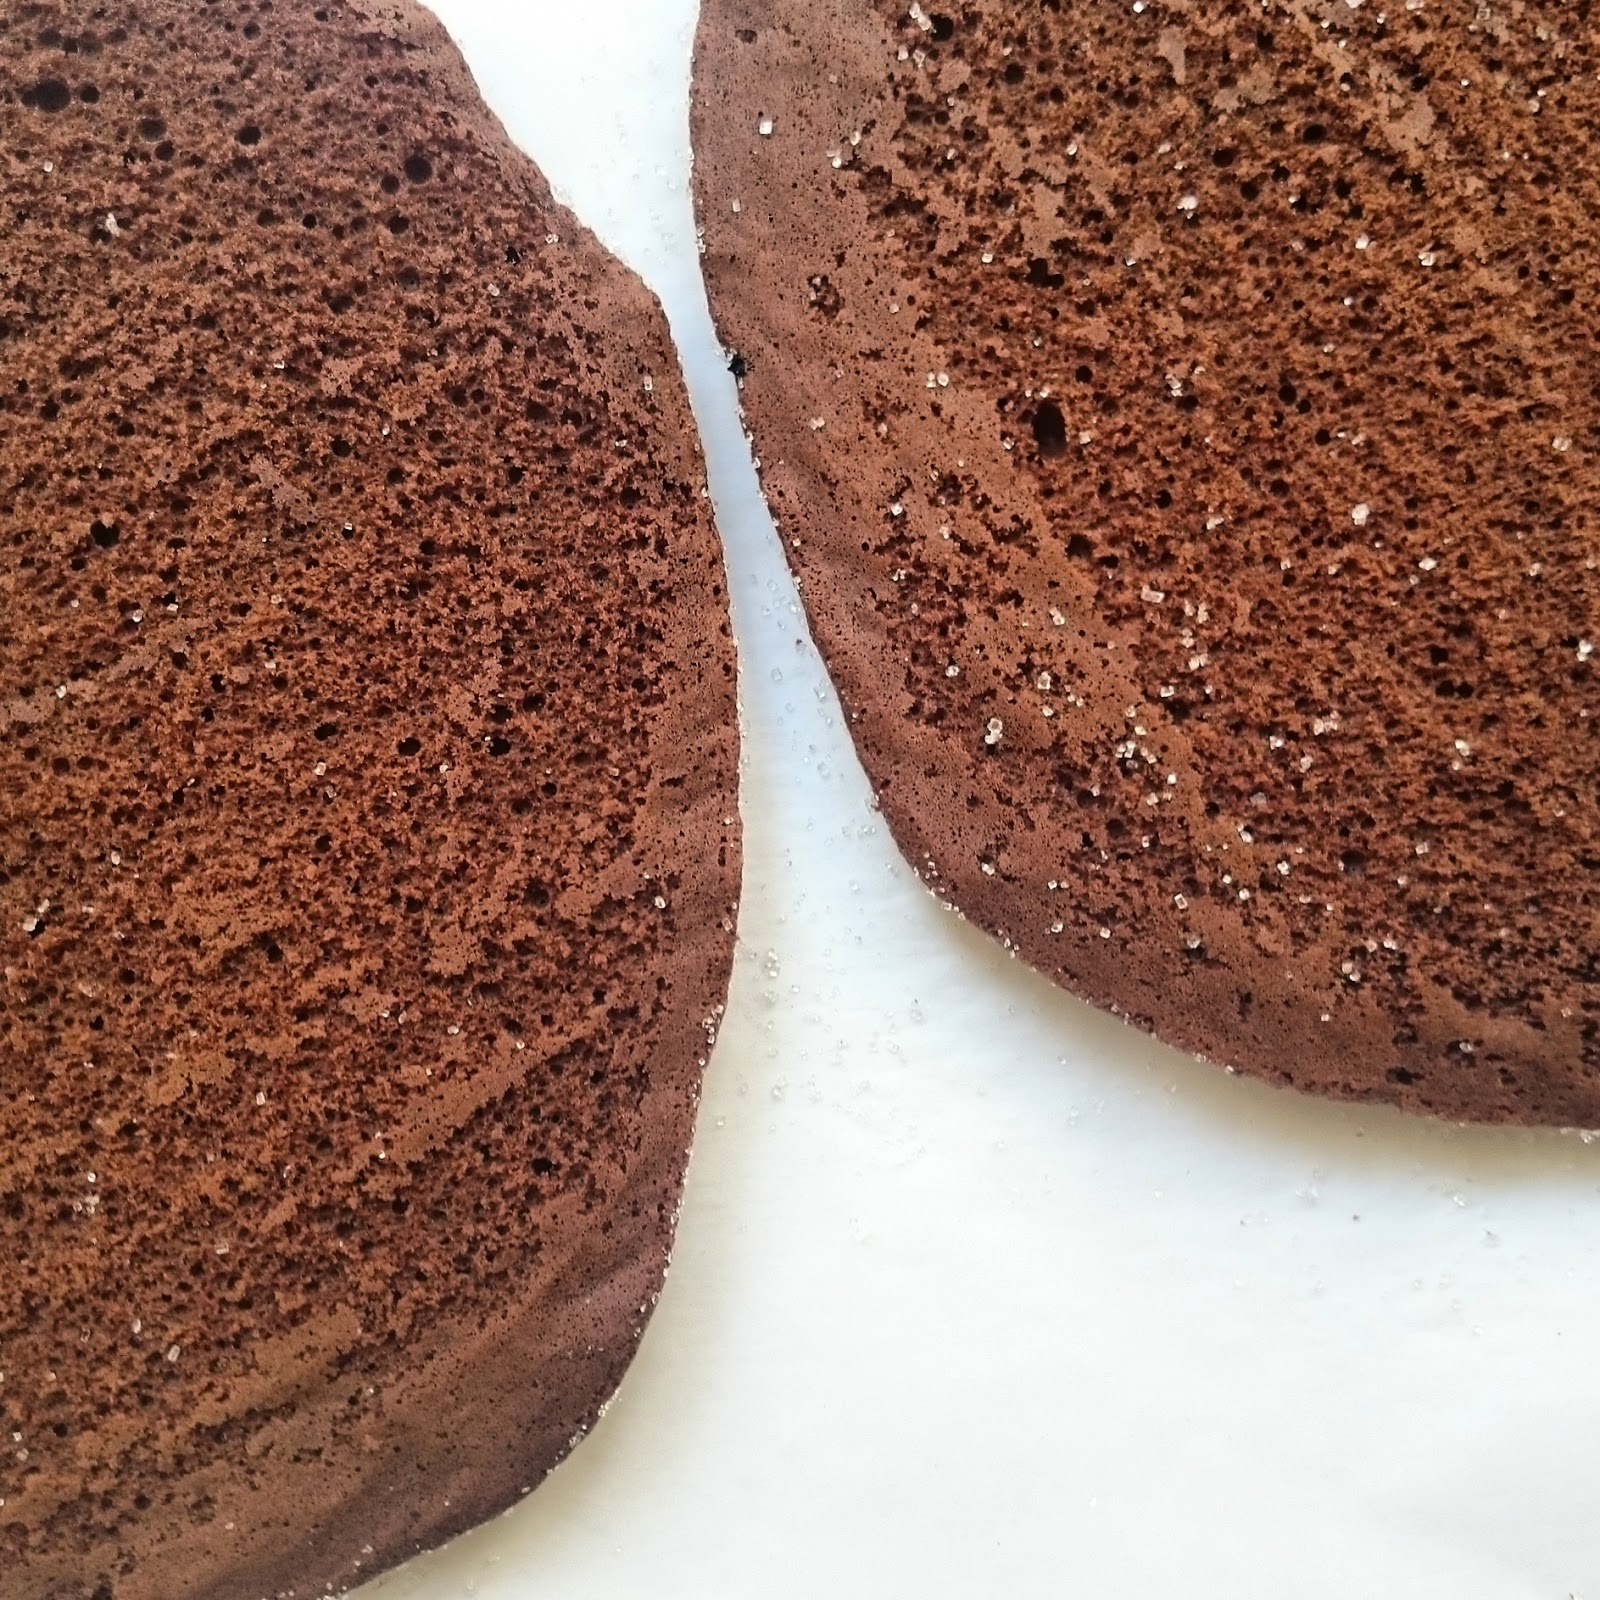 Thin Chocolate Sponges